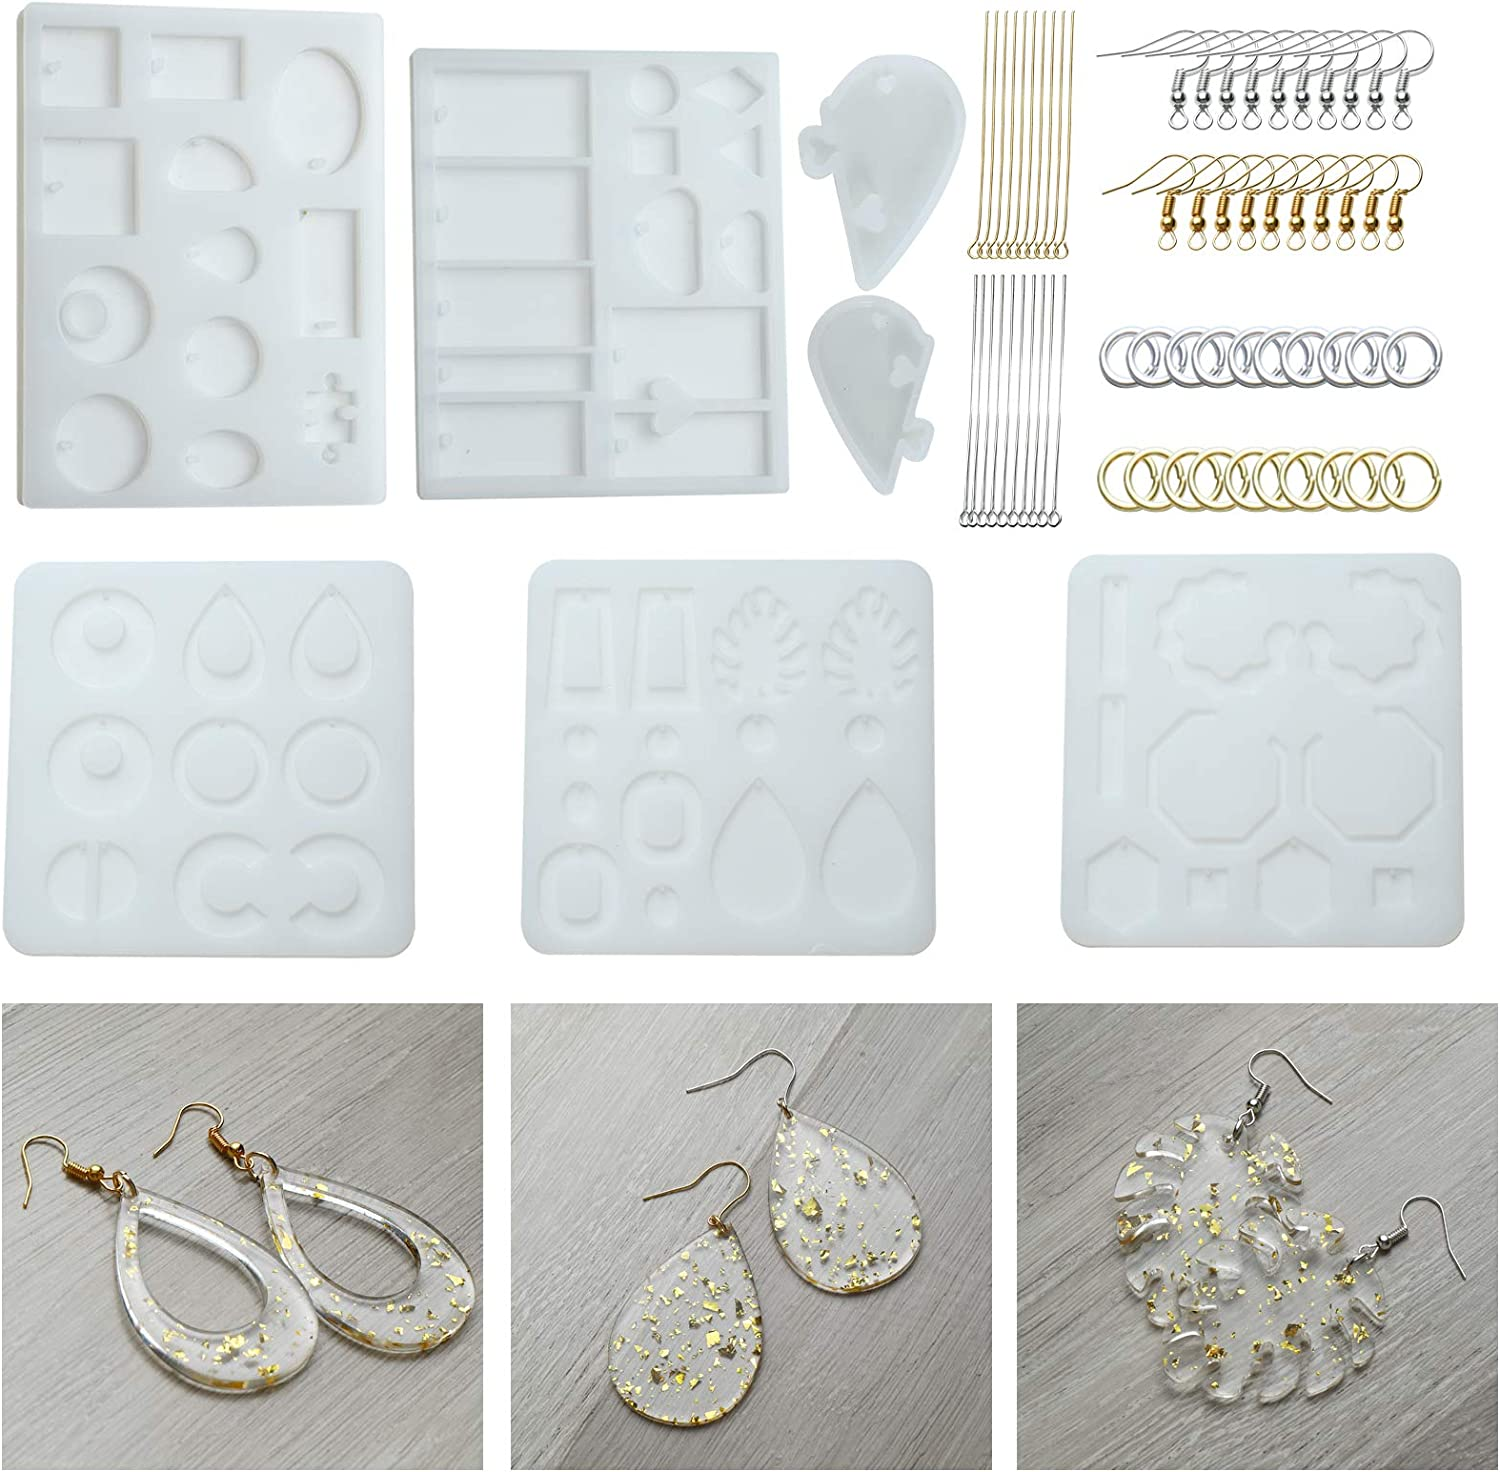 Alphabet Mold for Resin,Keychain Letter Silicone Resin Molds with Keychains Resin Drill Kits Epoxy Molds for DIY Keychain,Earring,House Number,Home Decoration /…